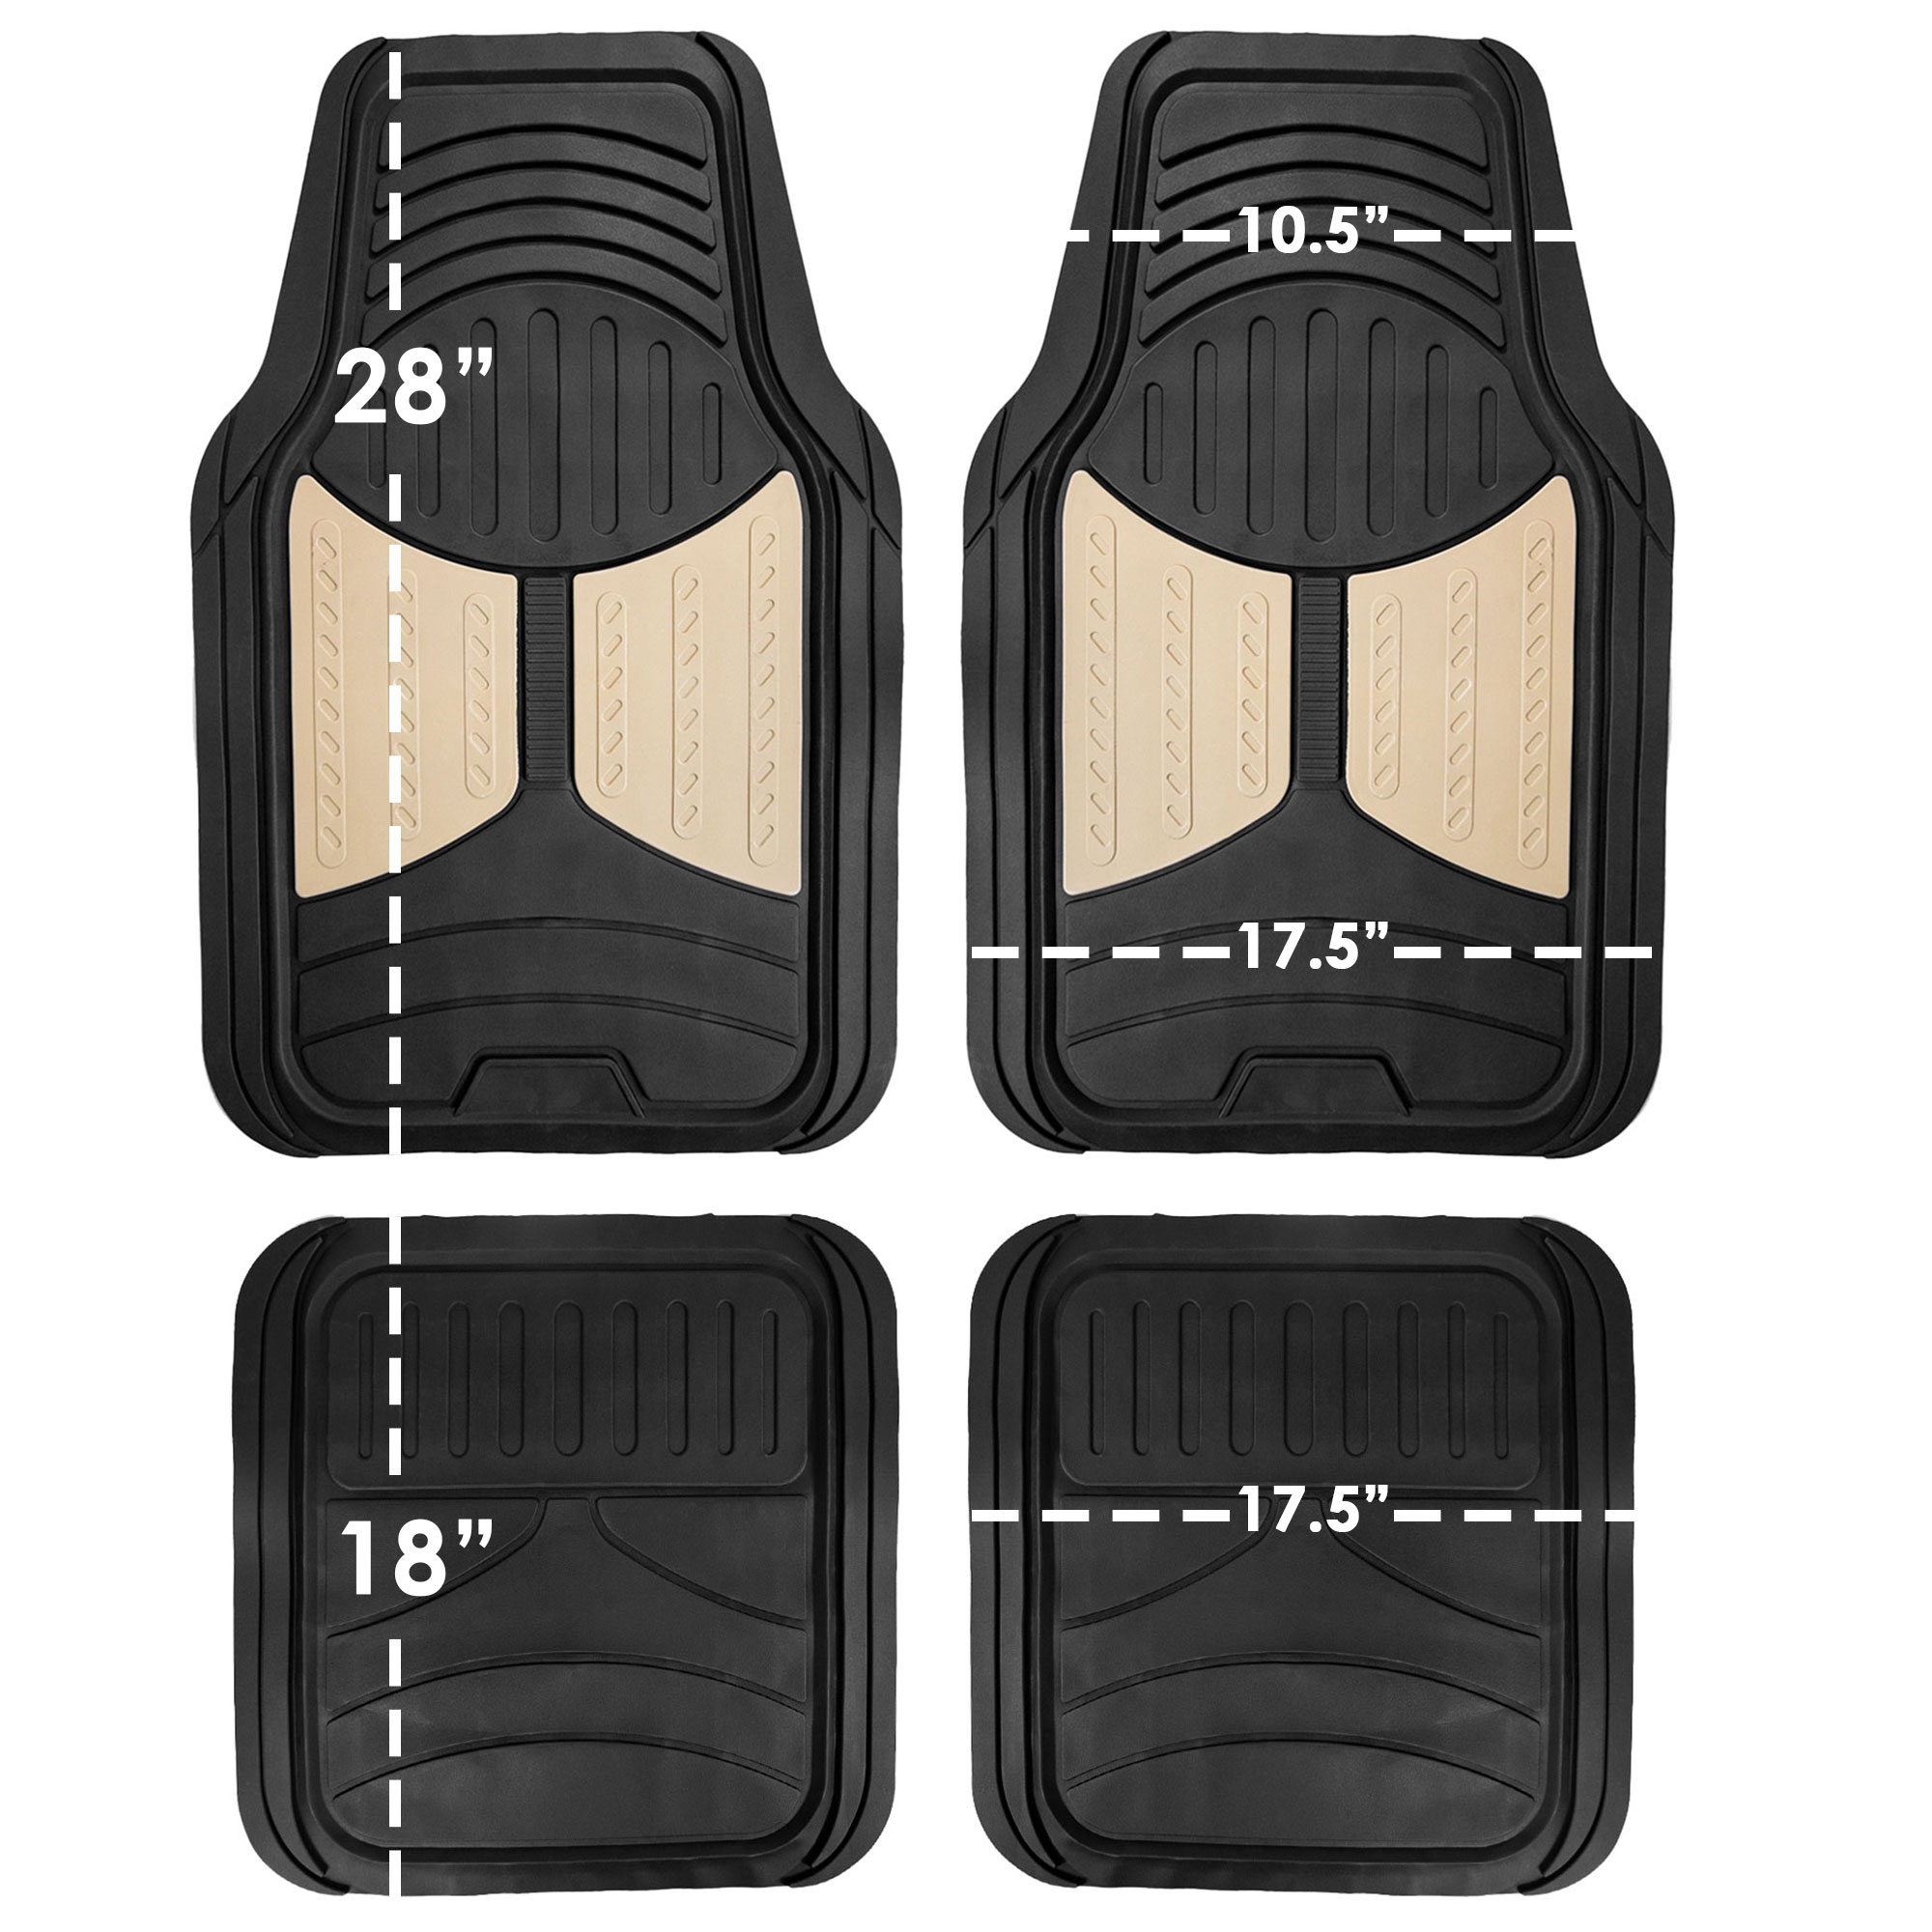 Car-Floor-Mats-for-All-Weather-Rubber-2-Tone-Design-4pc-Set-Heavy-Duty thumbnail 7